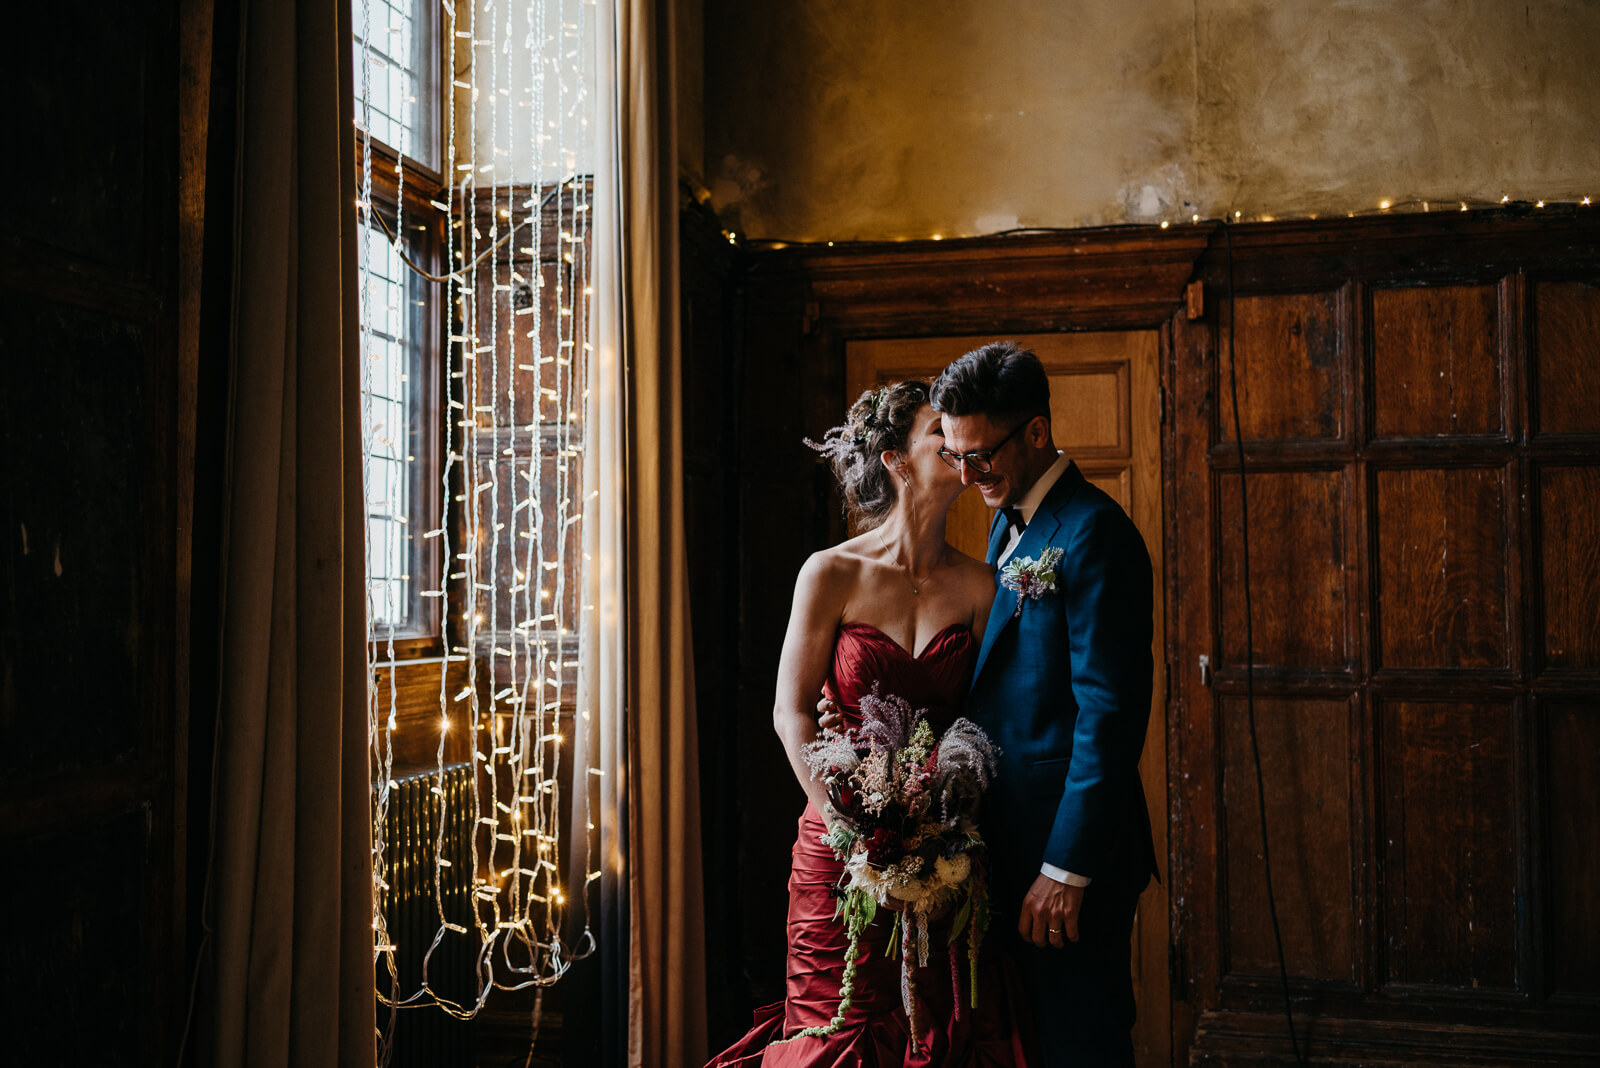 London bride and groom stop for portraits during their summer wedding at Battersea Arts Centre